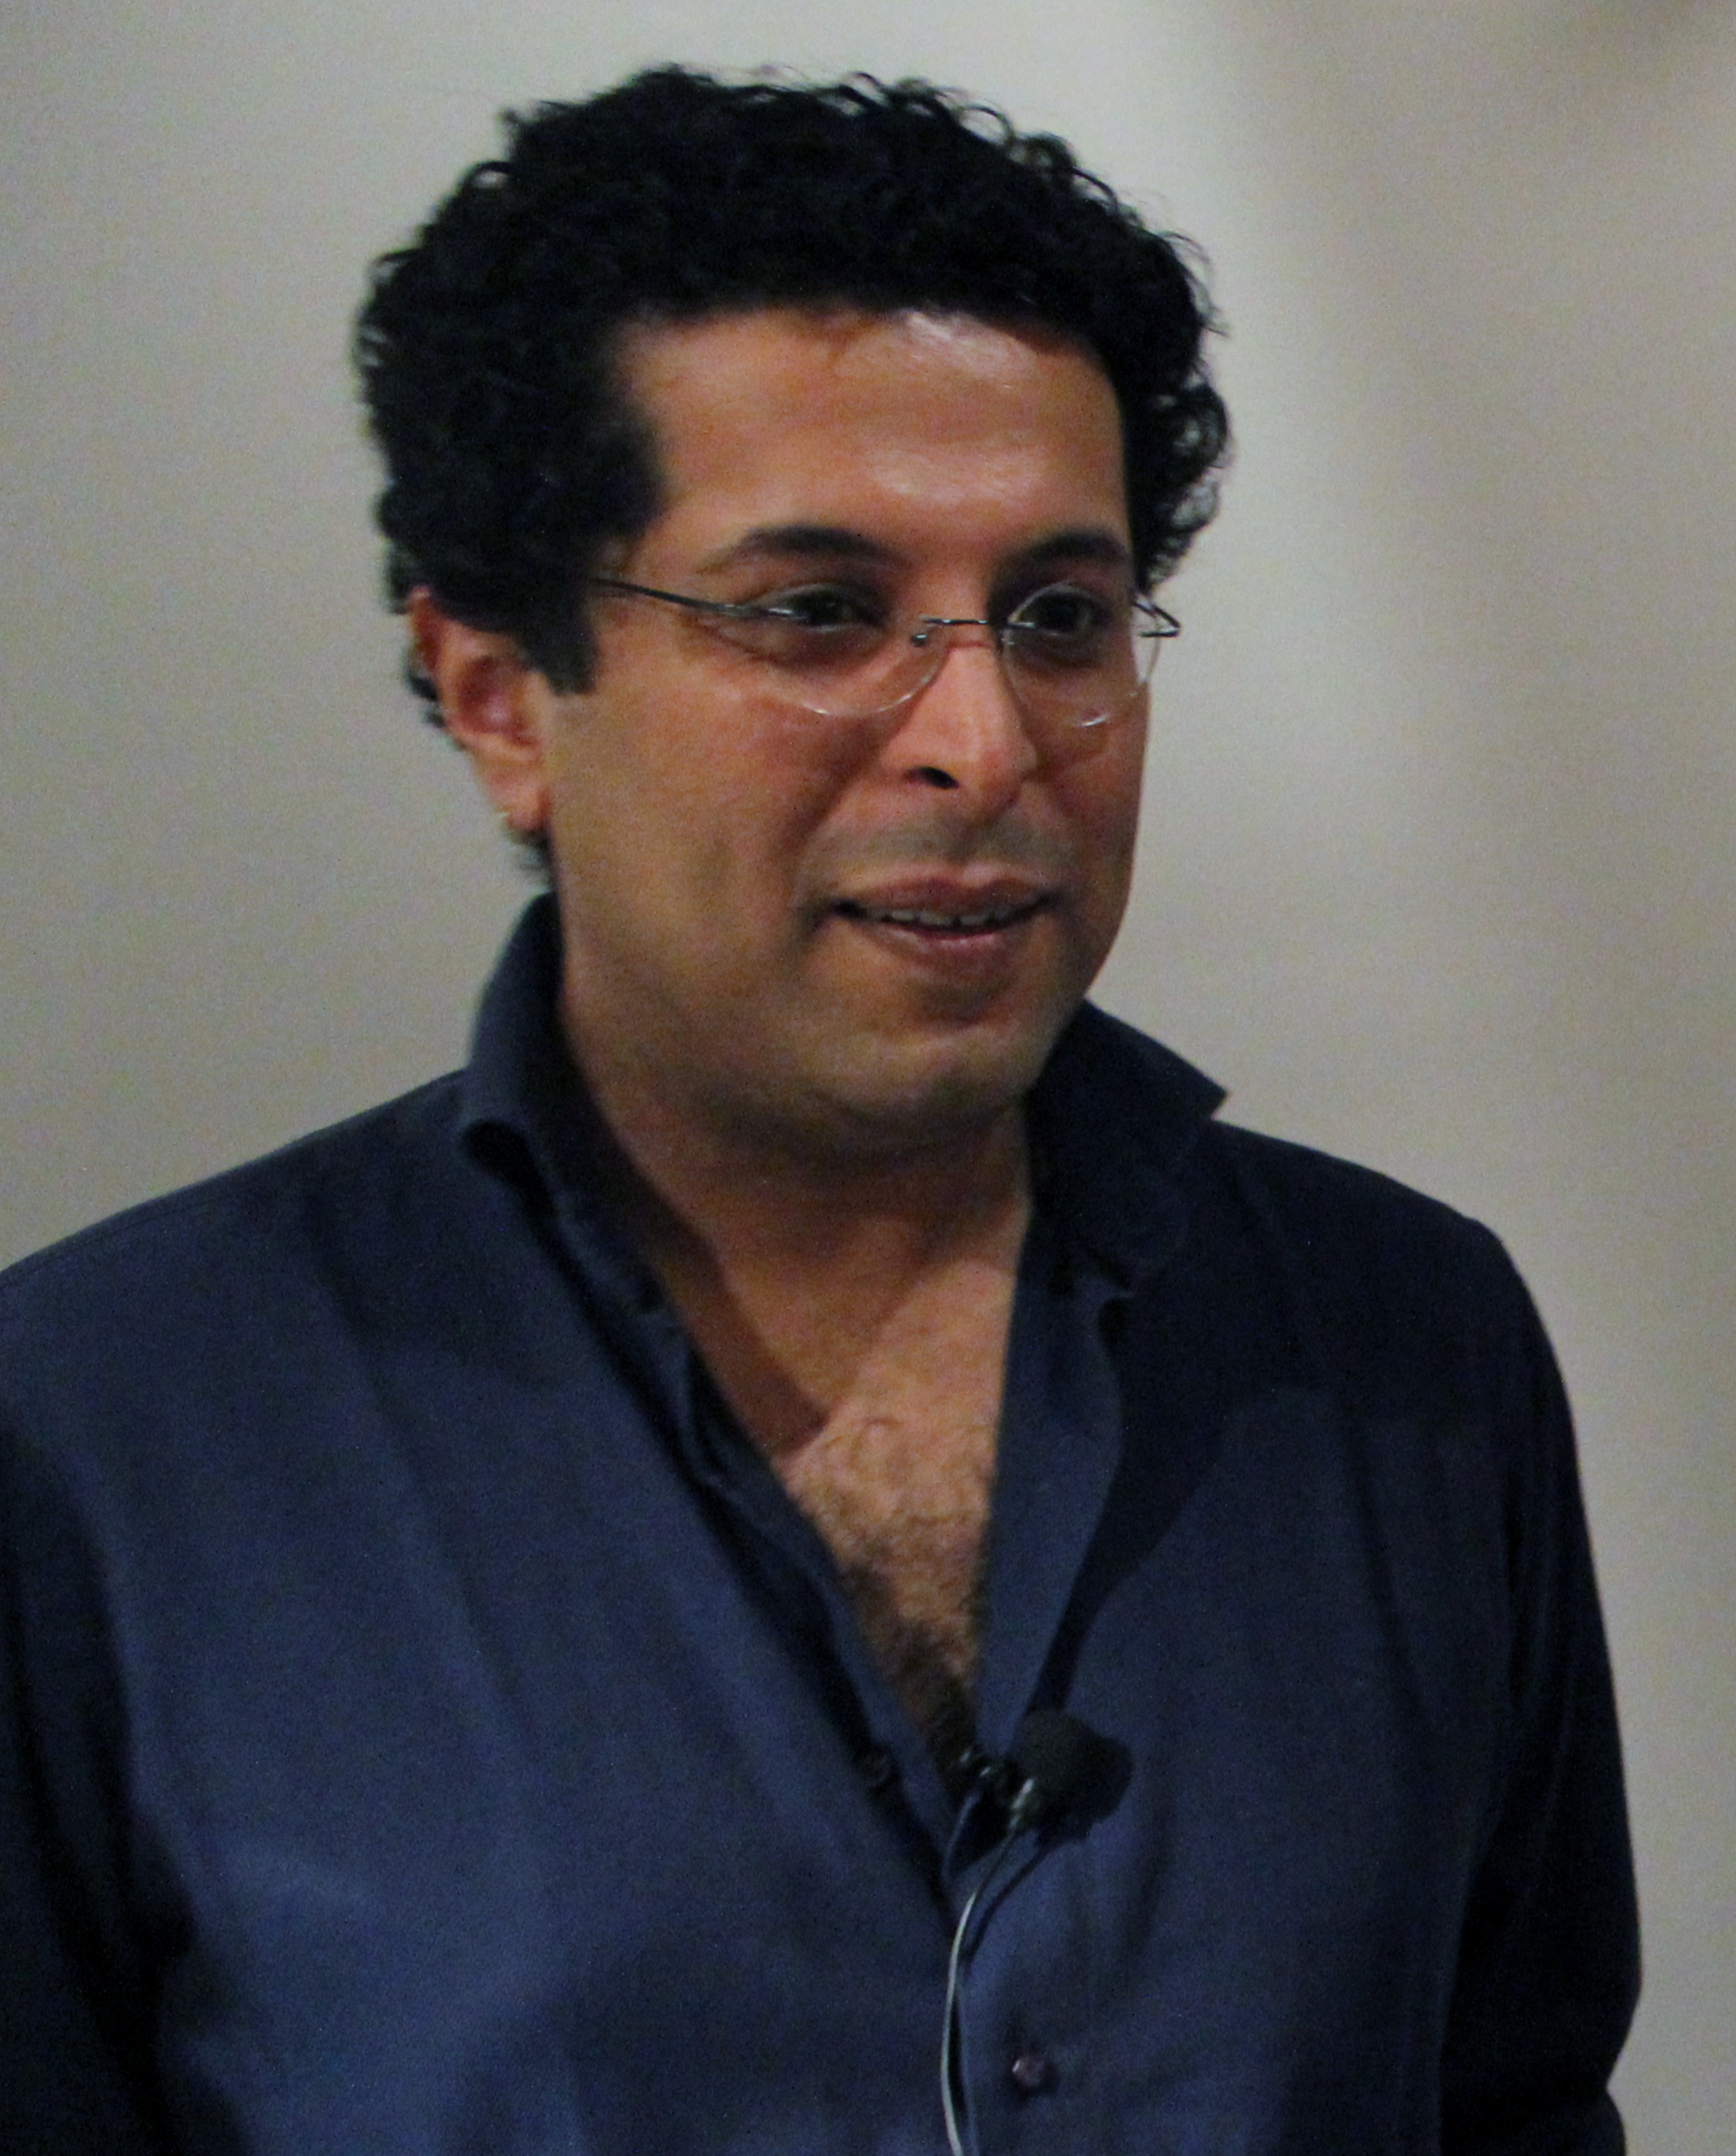 Image of Naman Ahuja from Wikidata